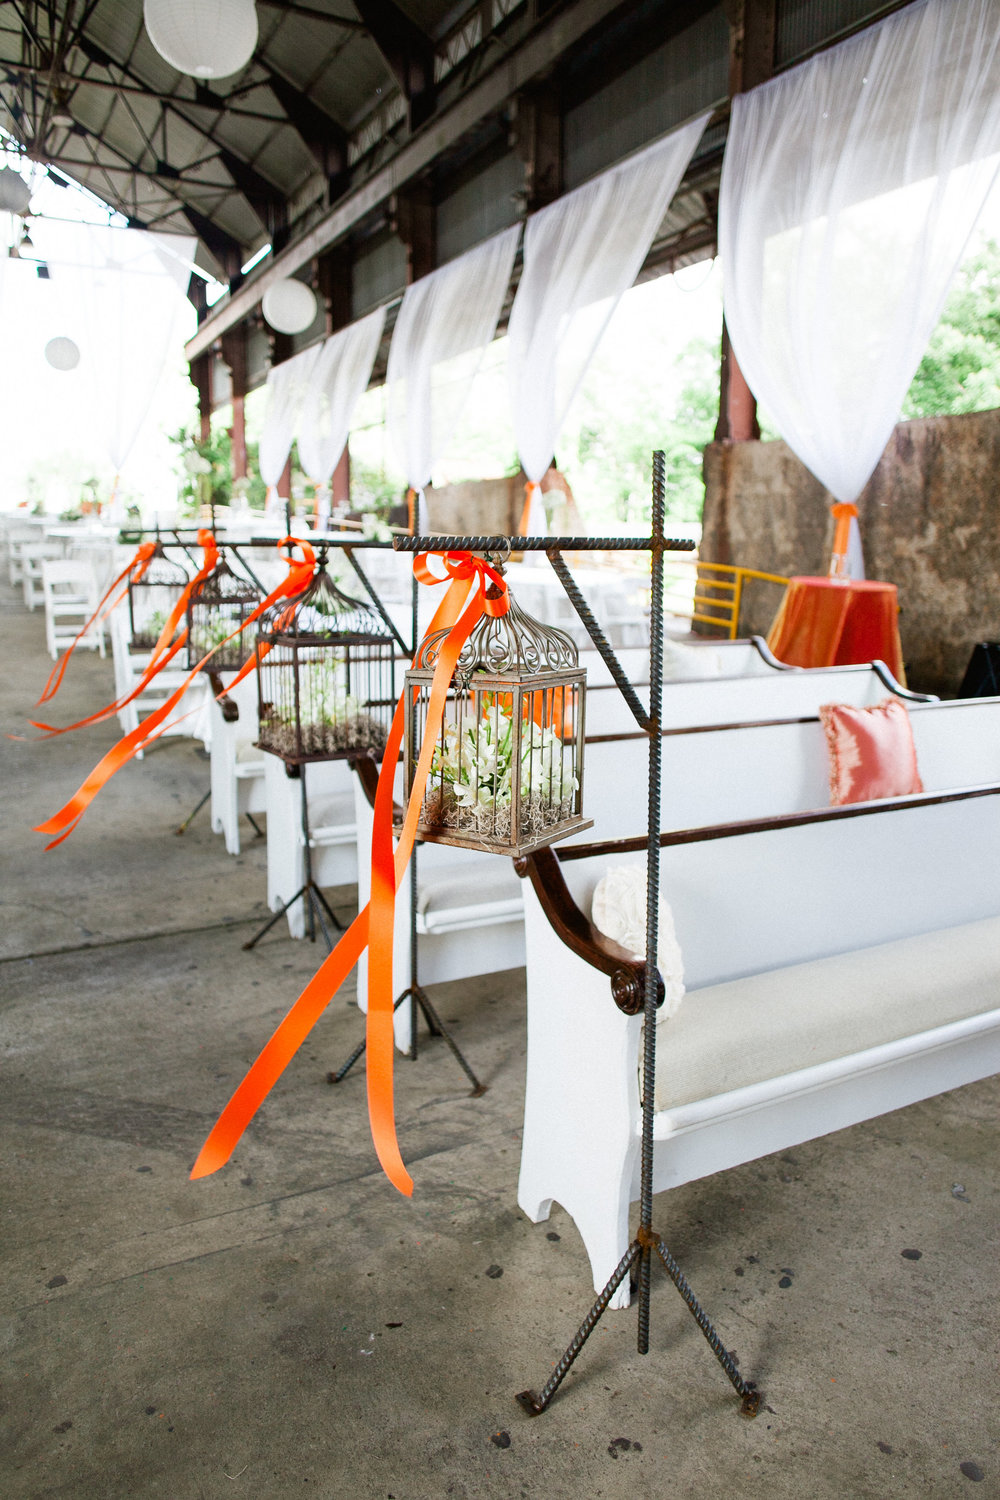 Alabama outdoor wedding with church pews. P.E.W.S. www.rentpews.com  Photography: Morgan Trinker www.morgantrinker.com